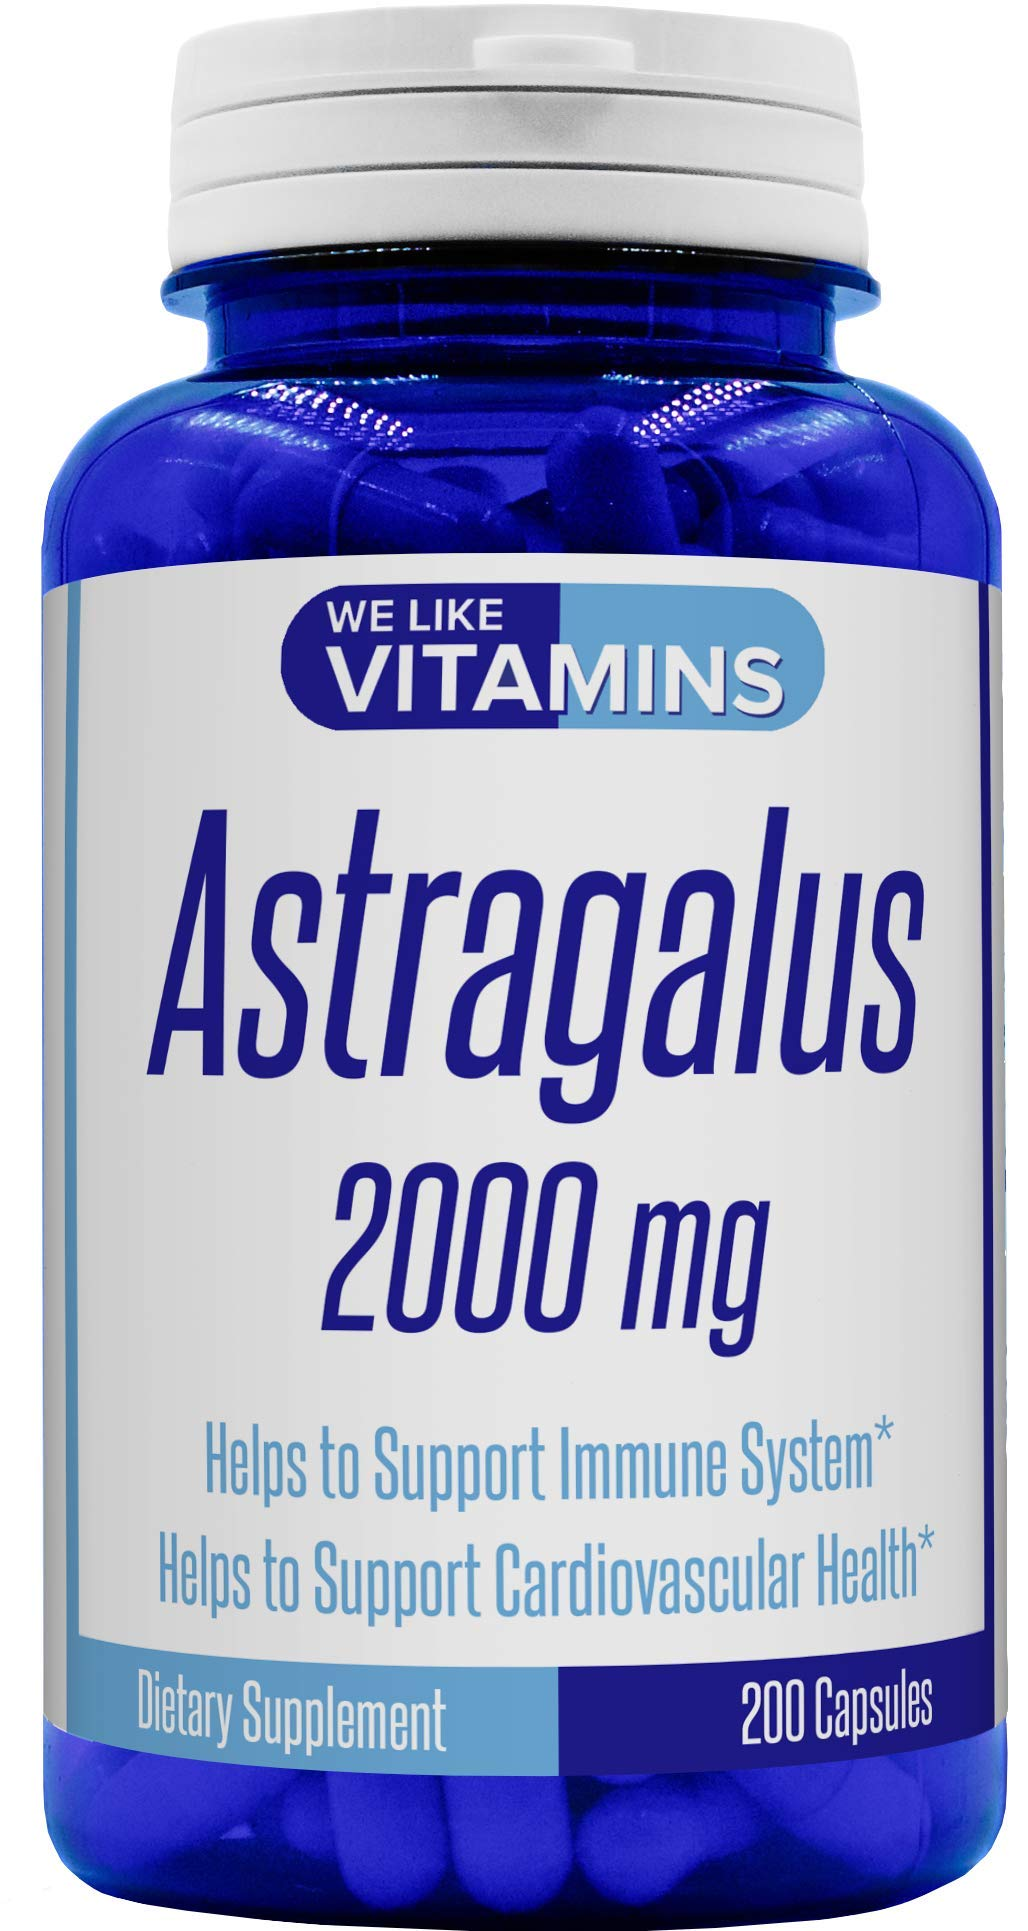 Astragalus Max Strength 2000mg – 200 Capsules – Best Value Astragalus Supplement on Amazon – Helps Support Strong Immune Function and Cardiovascular System